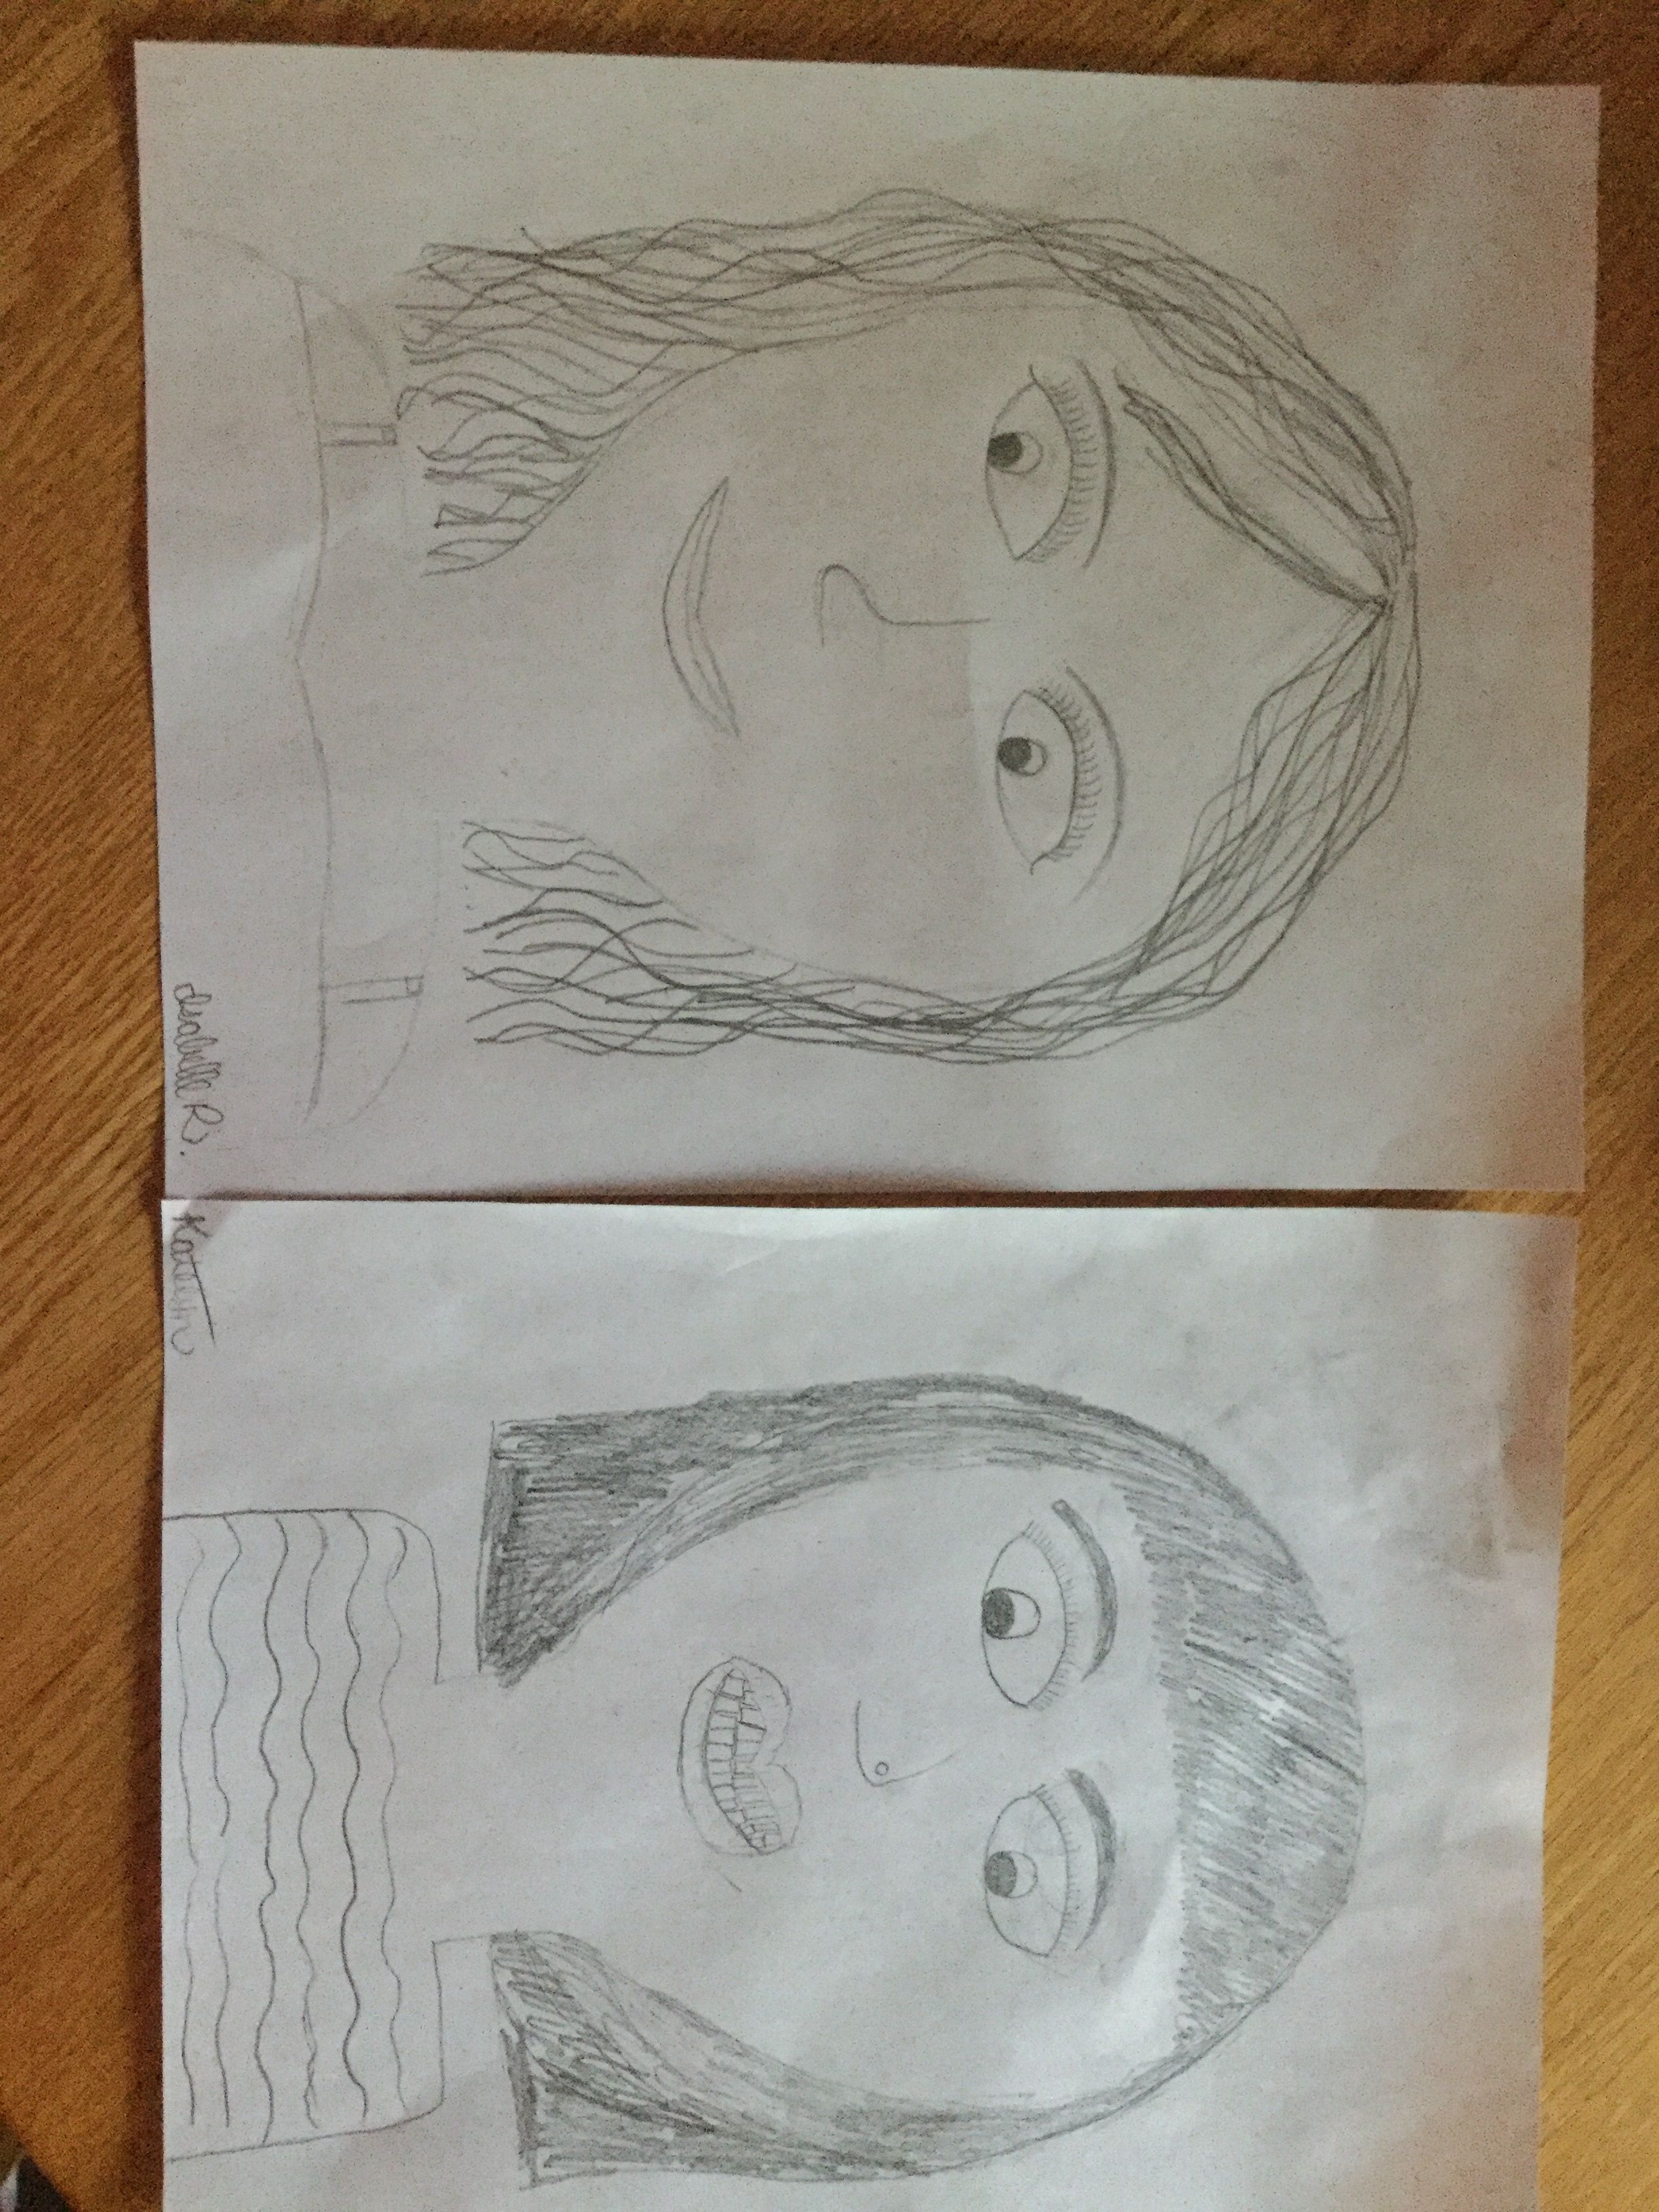 Easy Pictures To Draw For 7 Year Olds Amazing Gift Ideas For 7